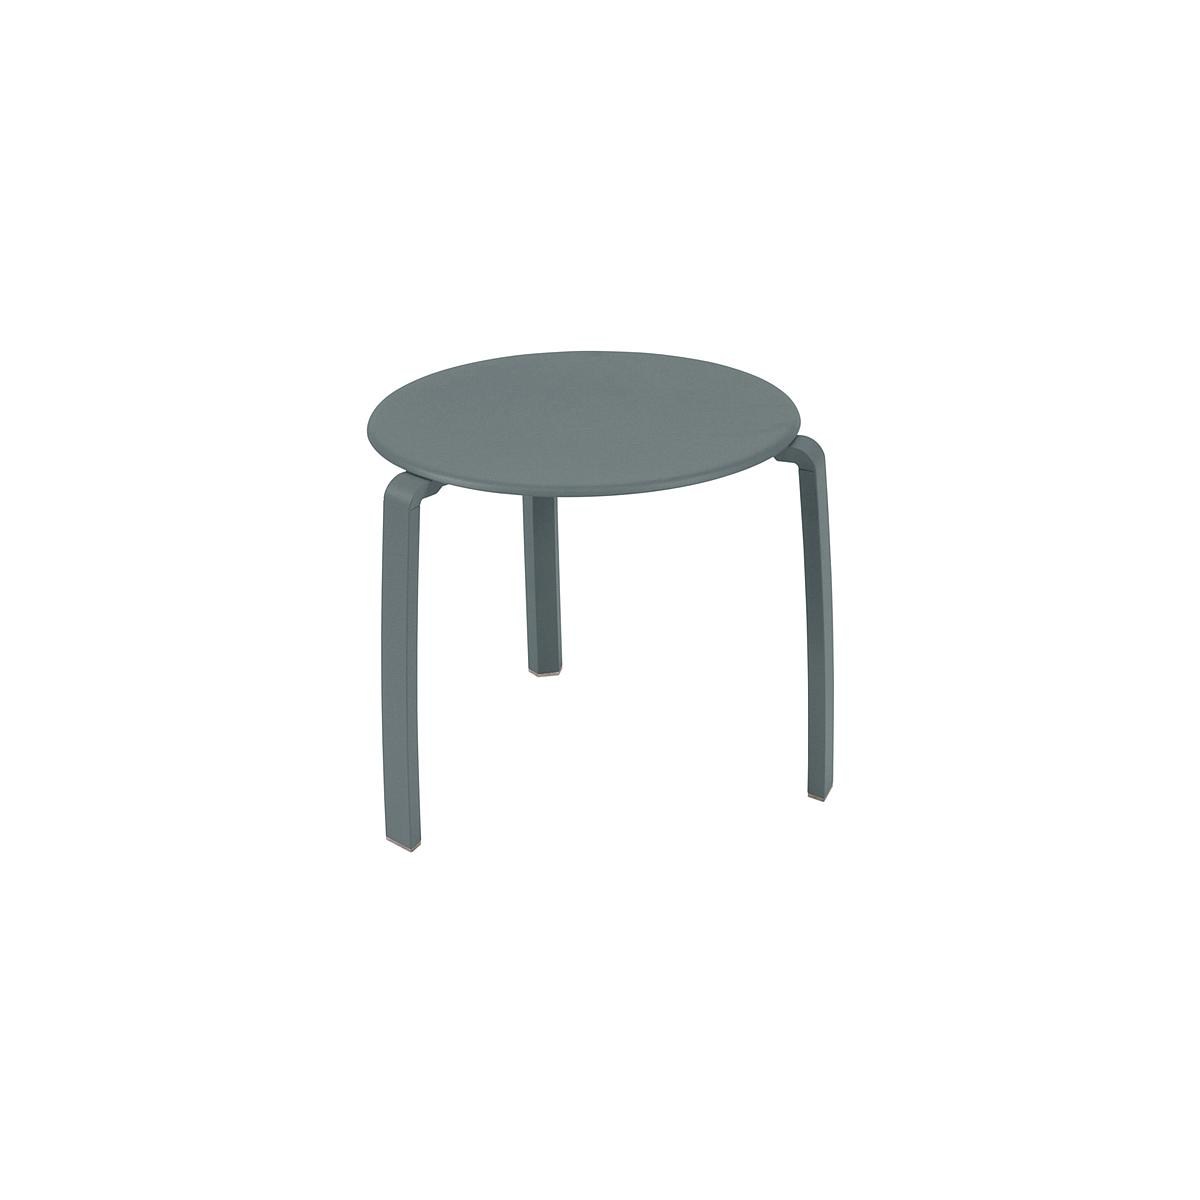 ALIZE by Fermob Table basse Gris orage